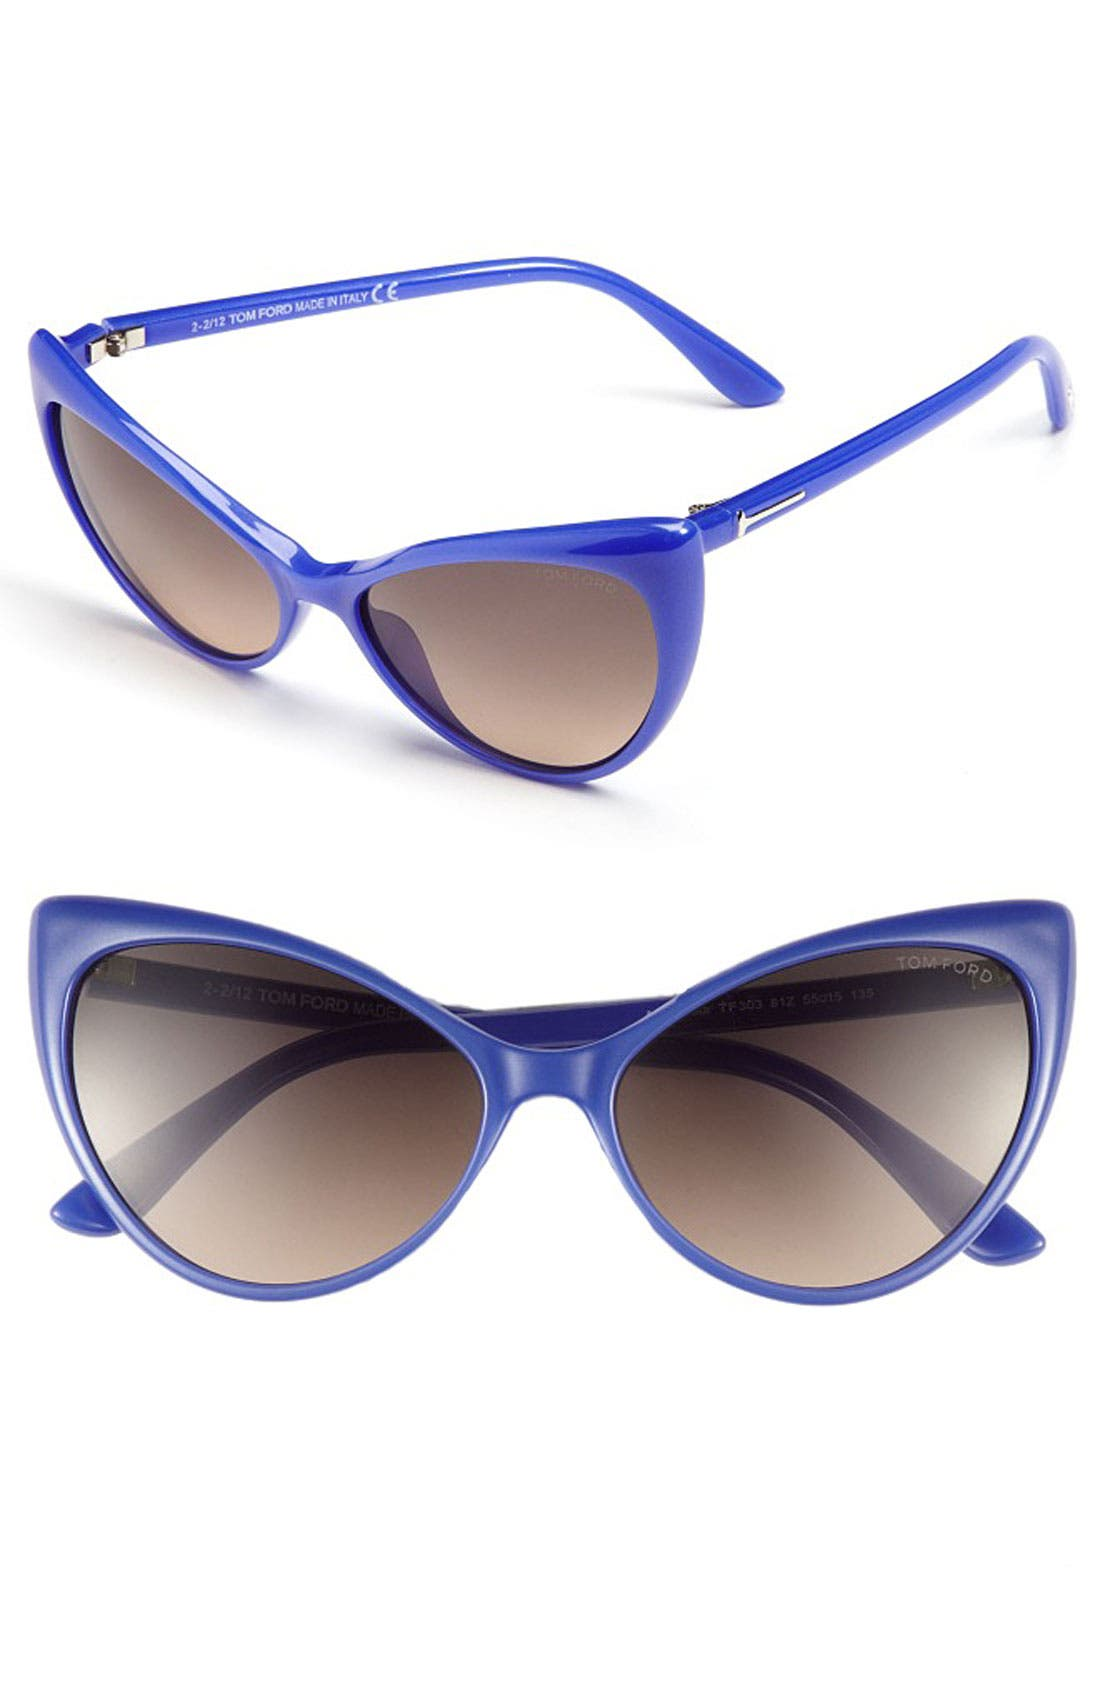 Main Image - Tom Ford 'Anastasia' 55mm Retro Sunglasses